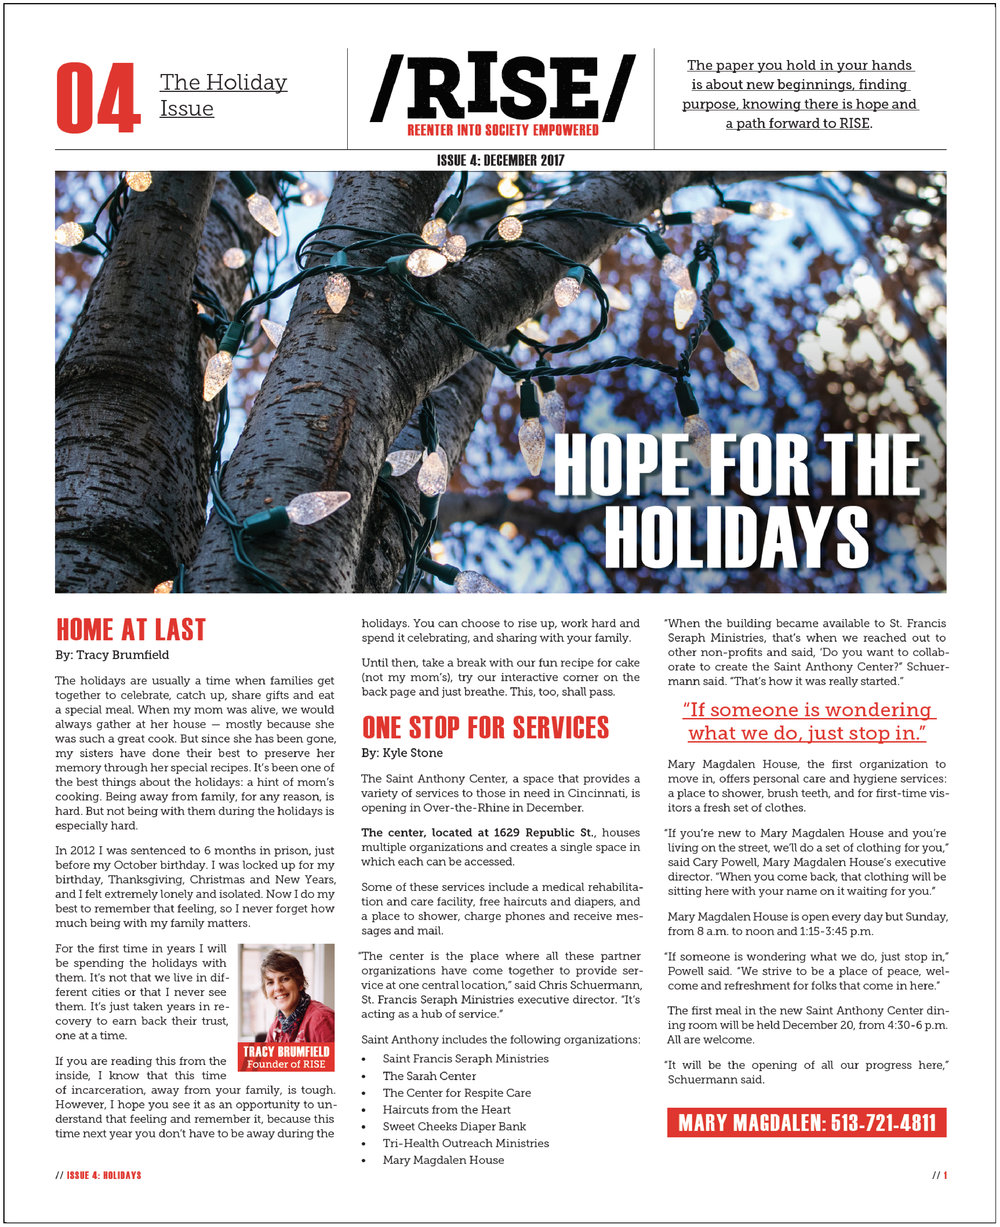 Issue 04 - The holiday issue